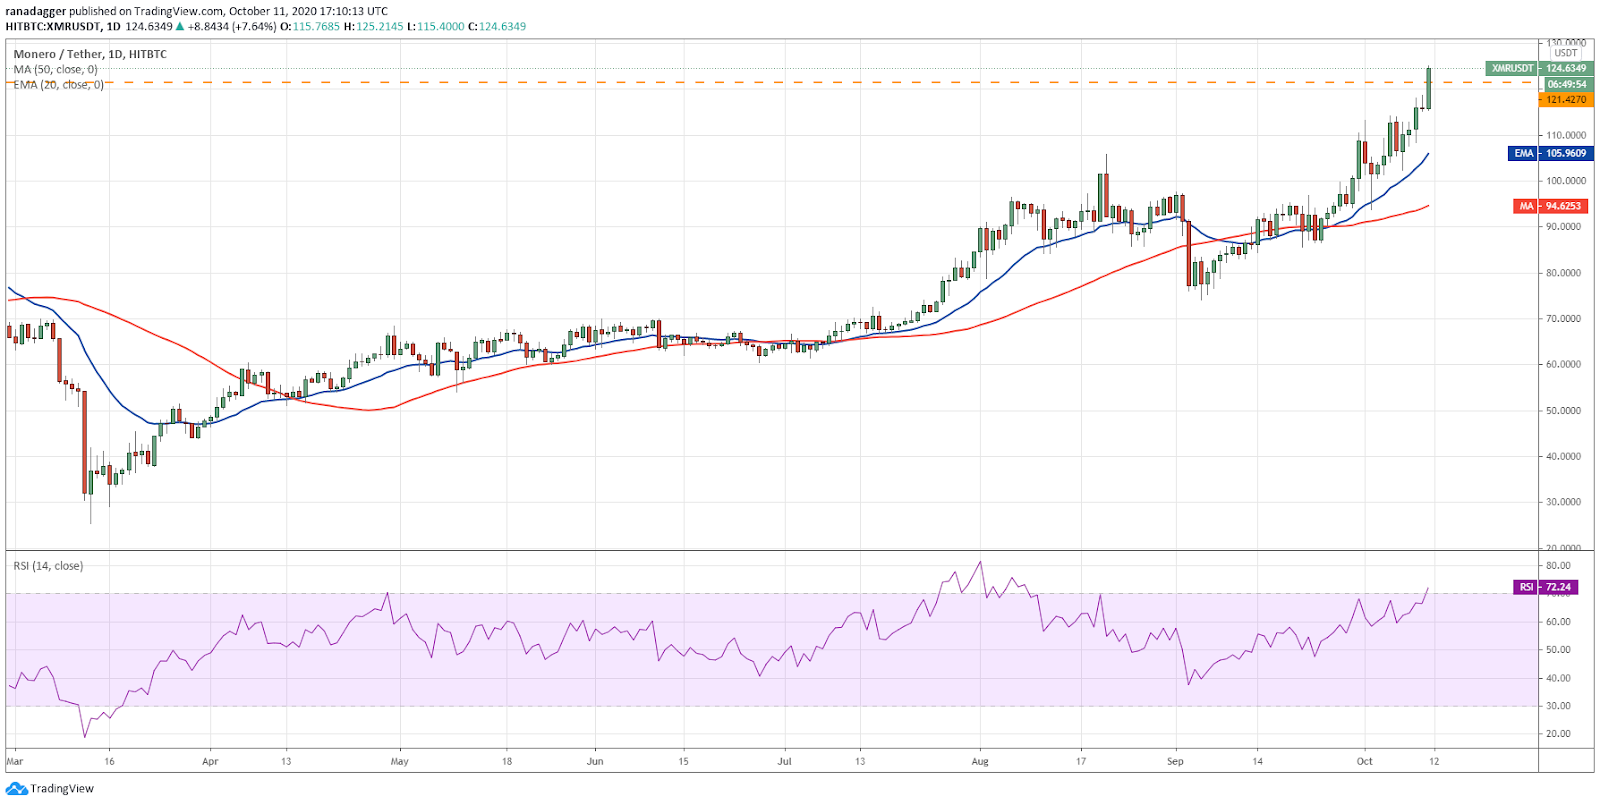 XMR/USD daily chart